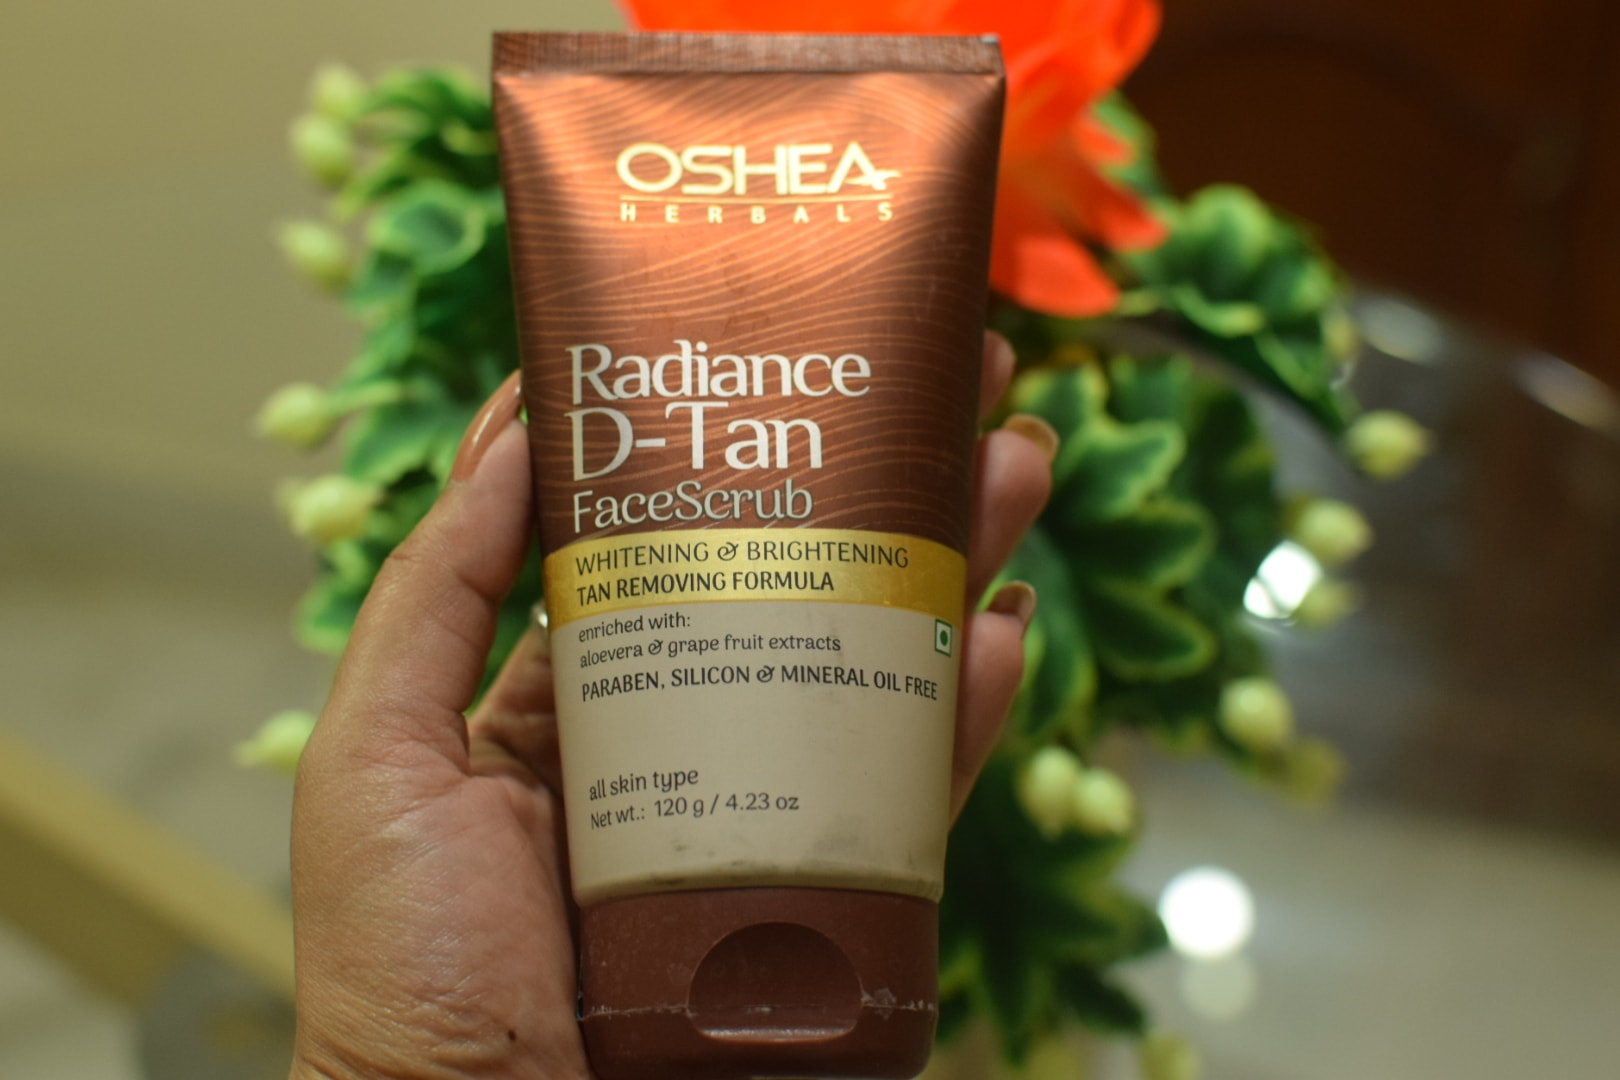 Oshea Herbals Radiance D-TAN Face Scrub Review